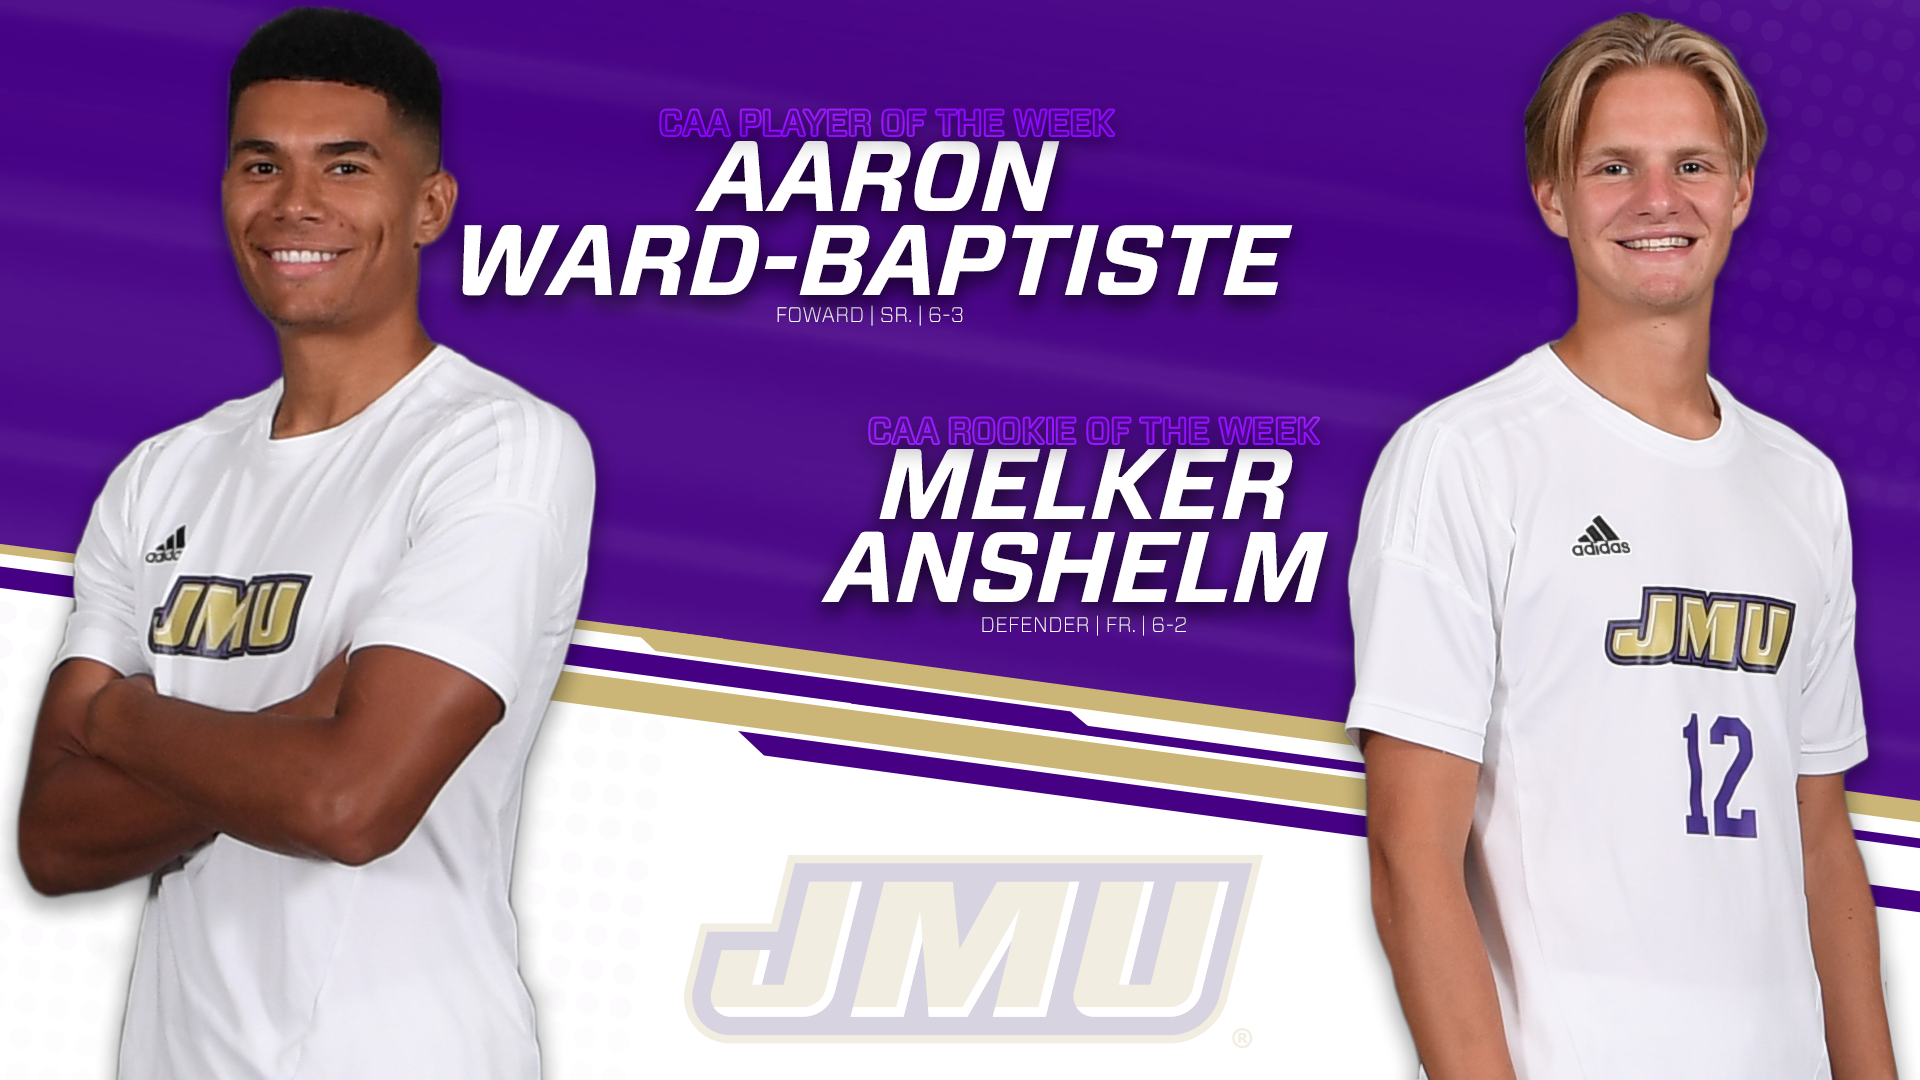 Men's Soccer: Ward-Baptiste, Anshelm Sweep CAA Weekly Honors